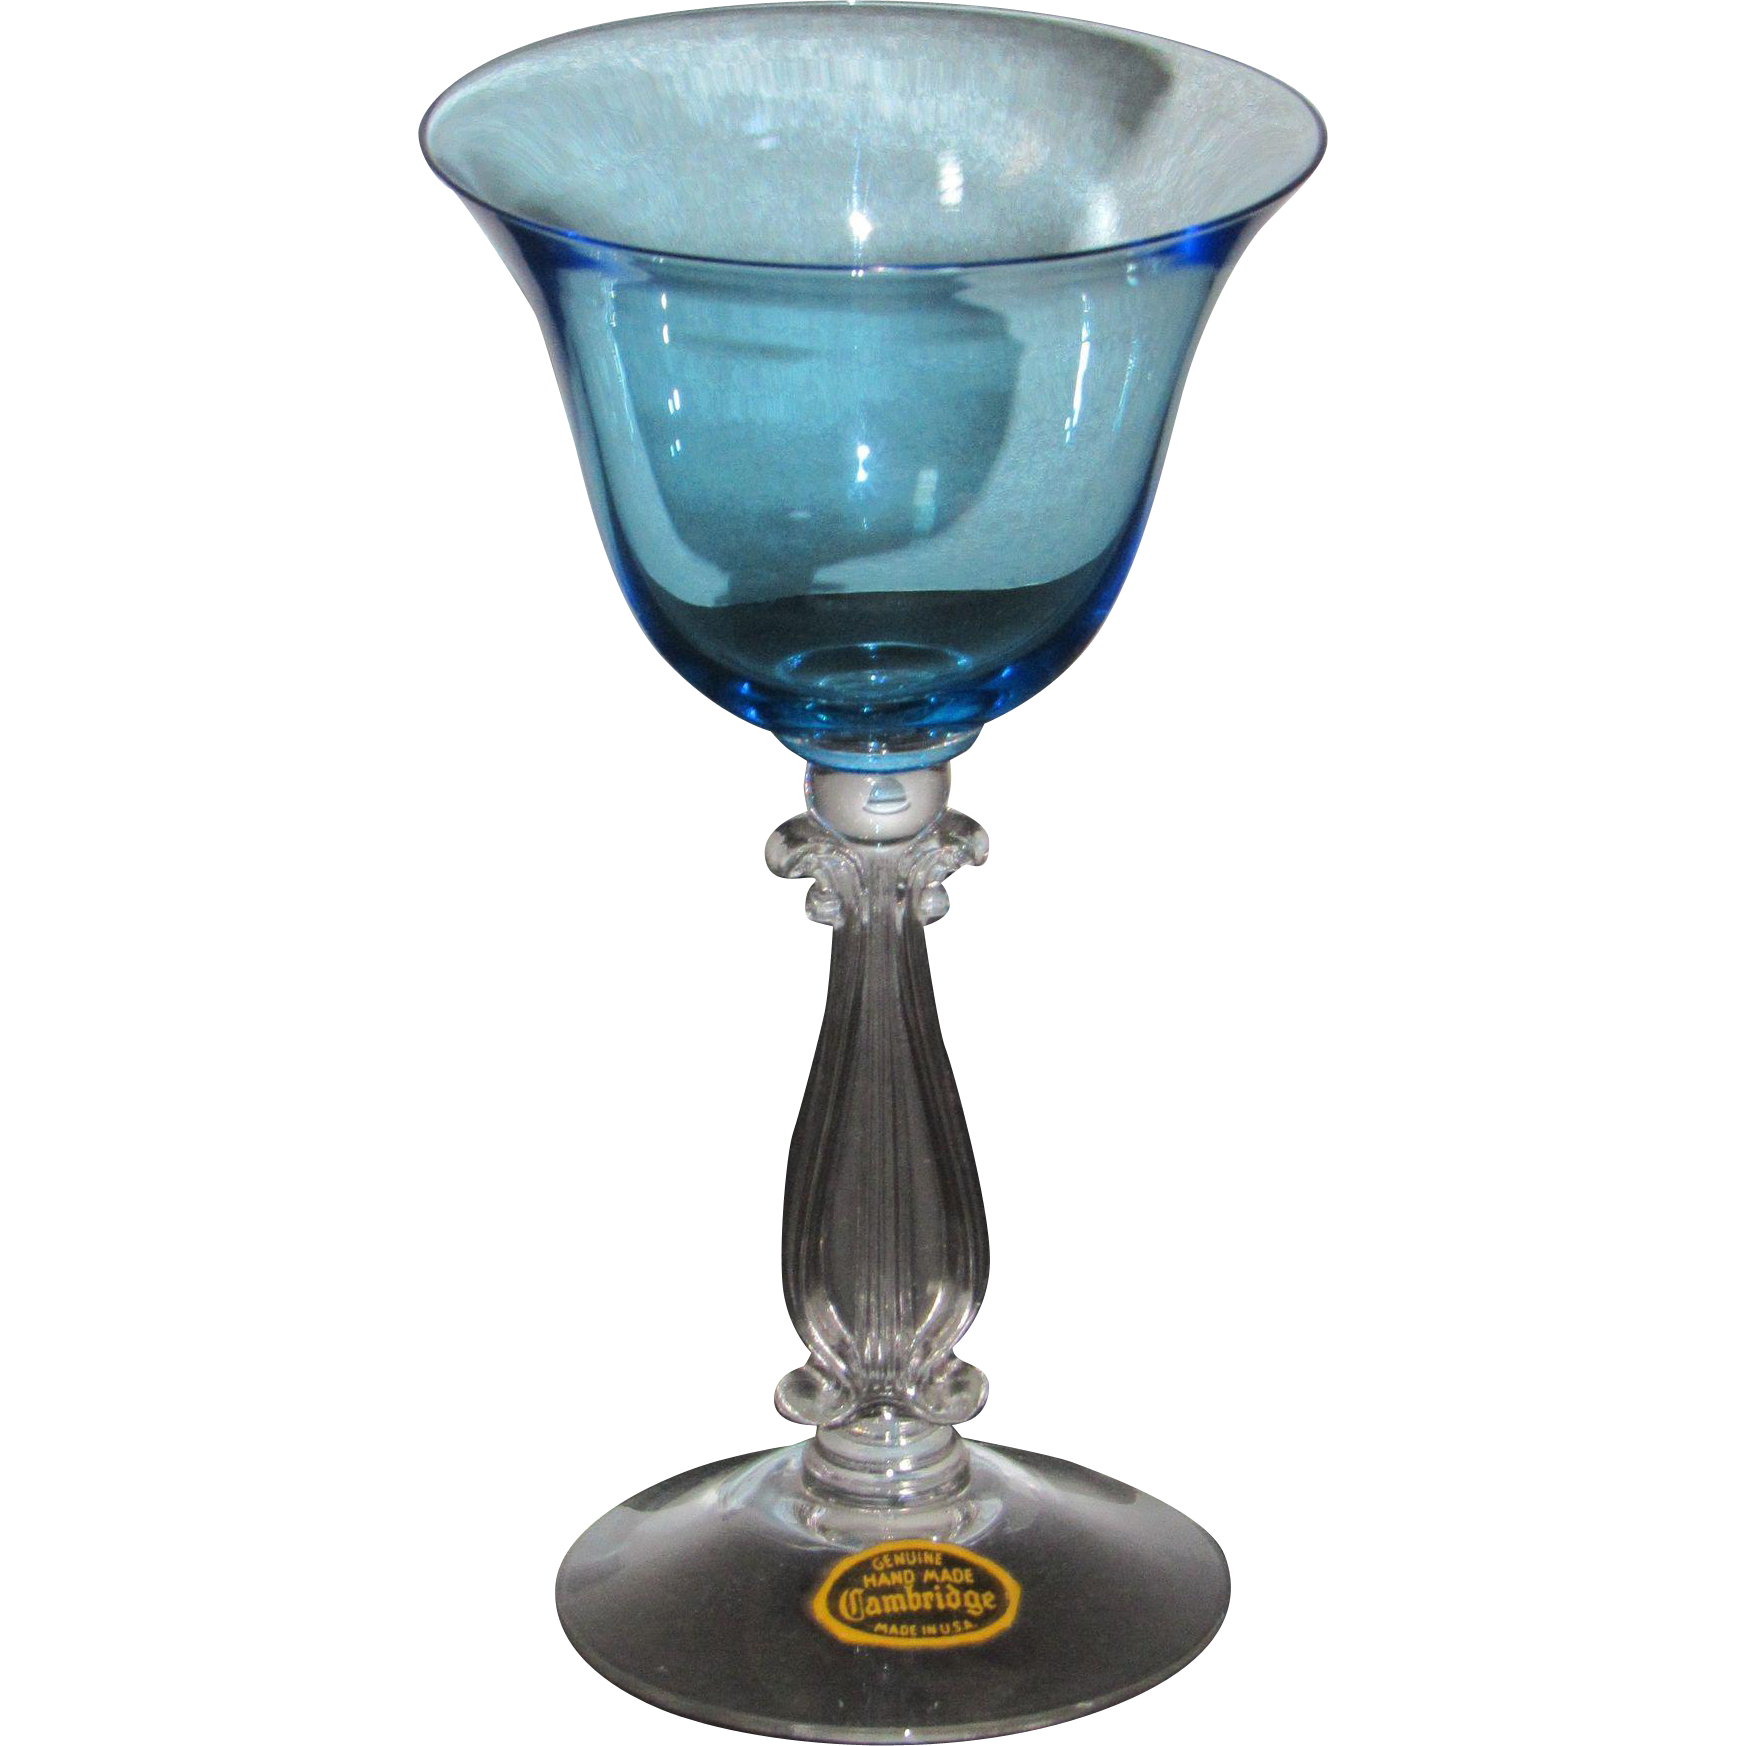 Cambridge Stradivari Cocktail Glass in Tahoe Blue w/ Cambridge sticker